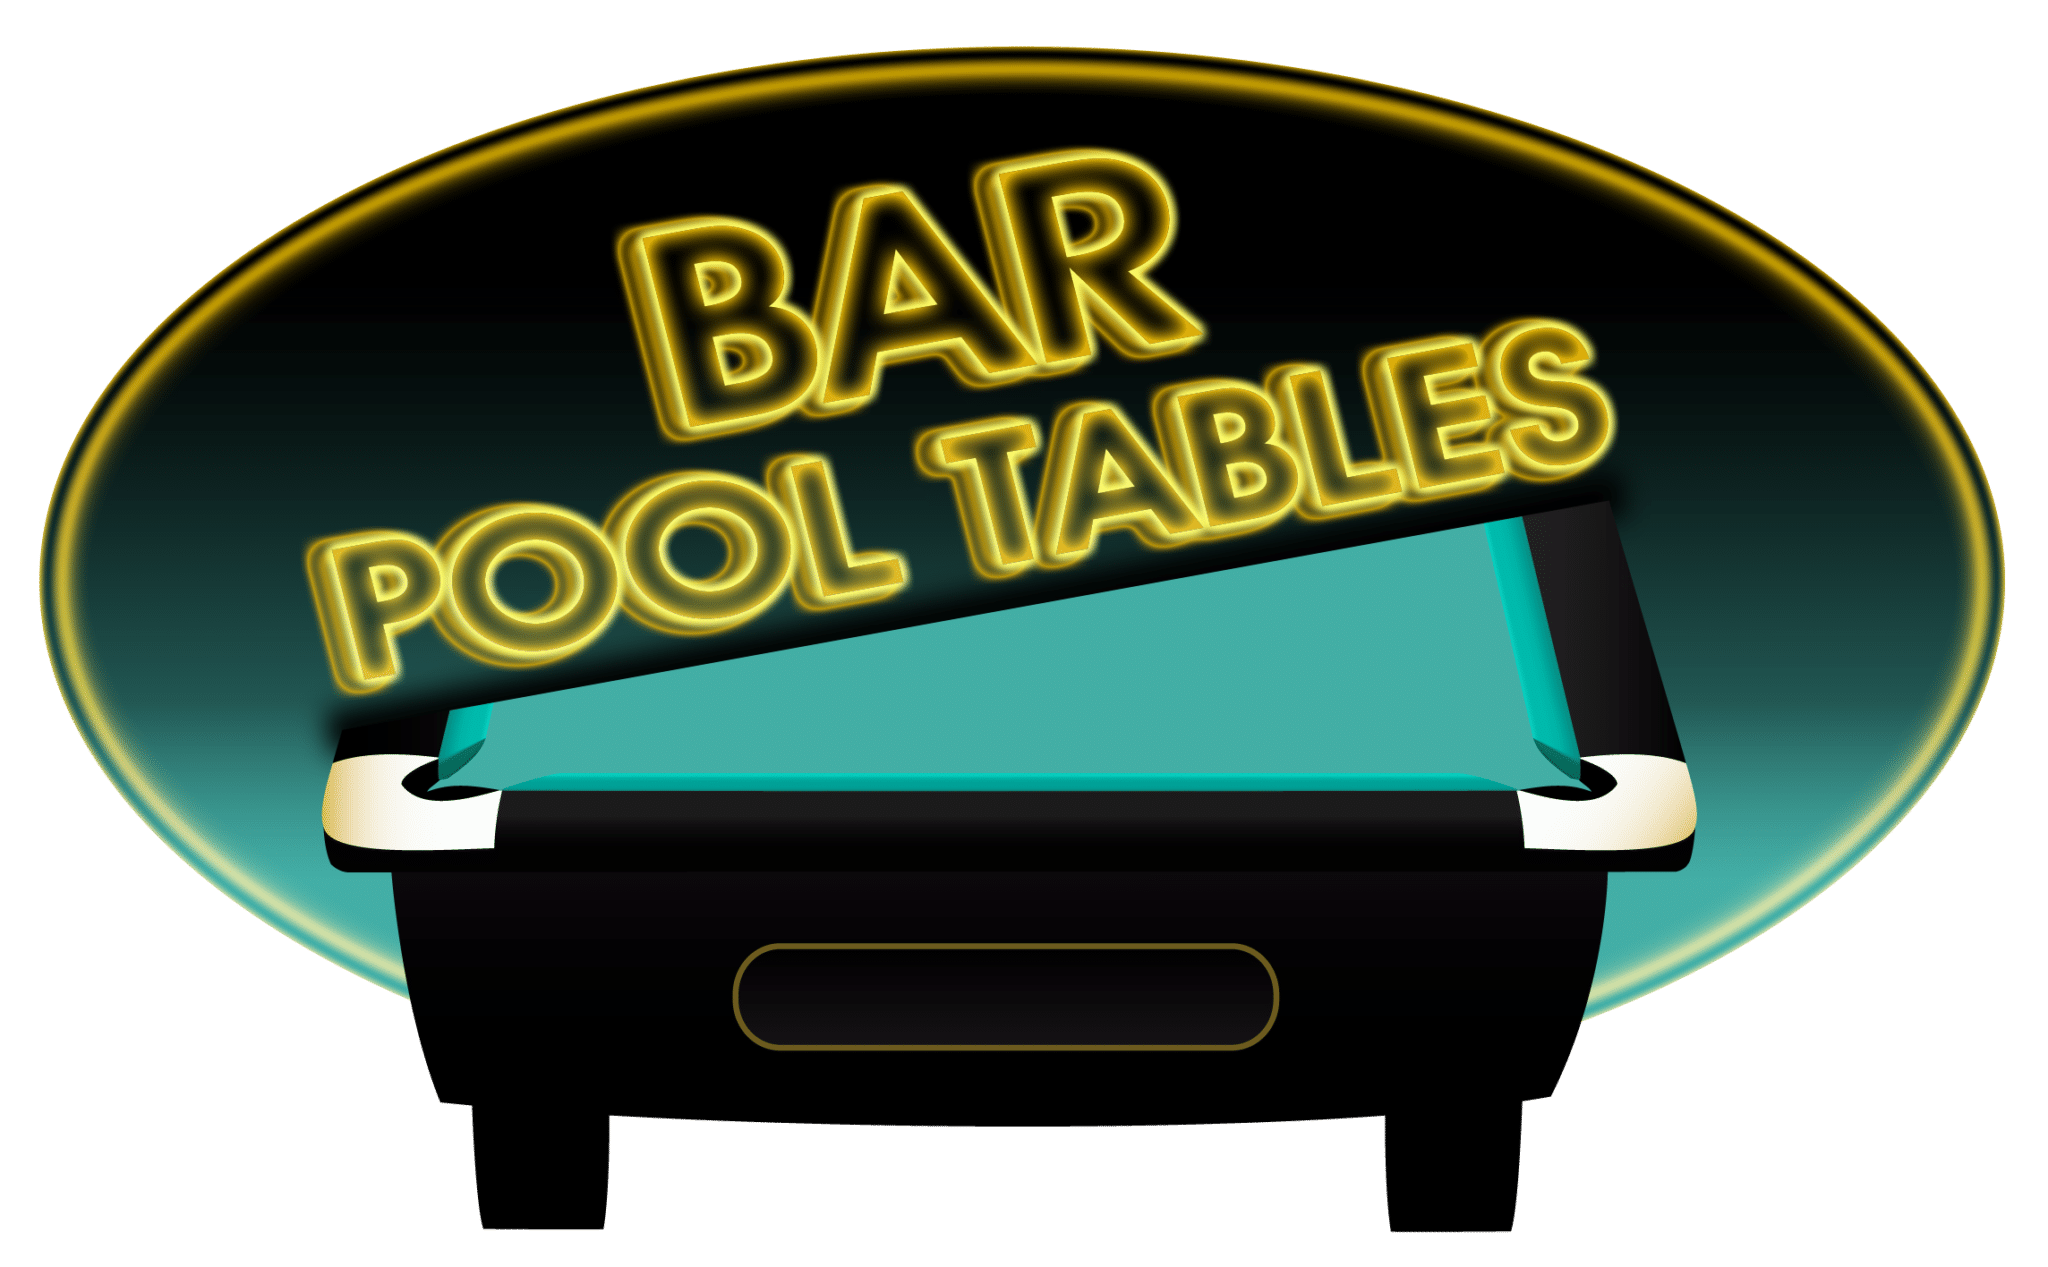 We strive to make each used bar pool table look the best it can for it's age and condition.